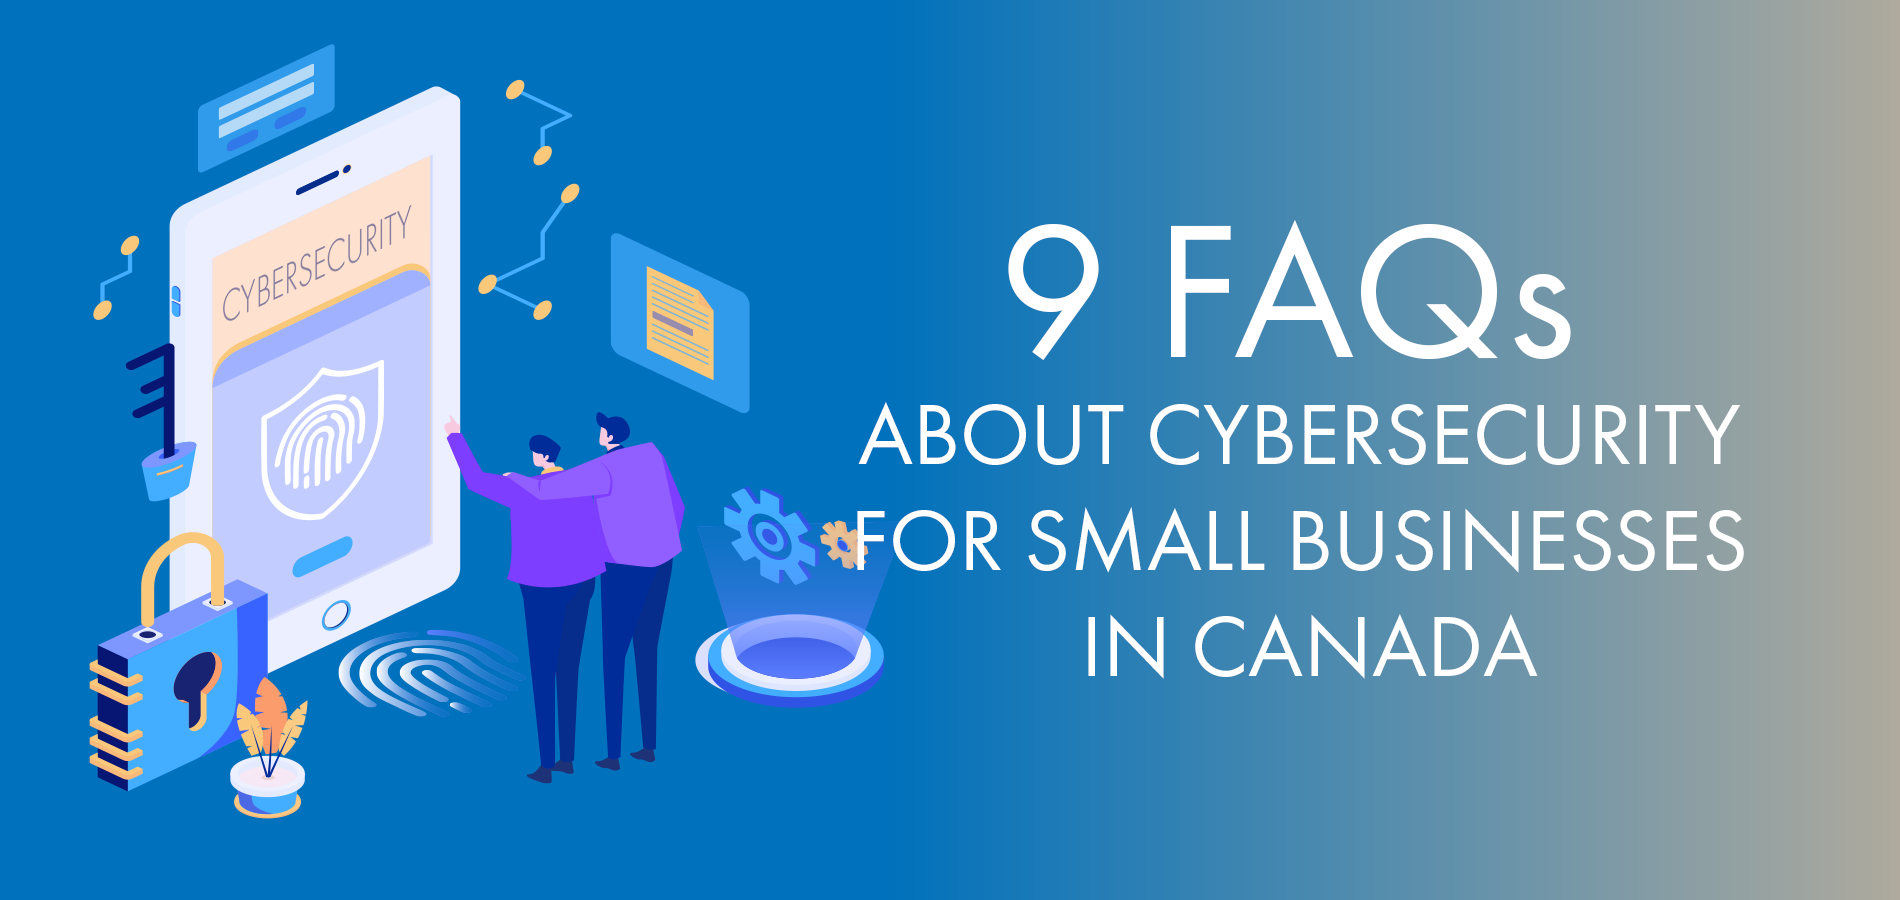 9 FAQs About Cybersecurity for Small Businesses in Canada